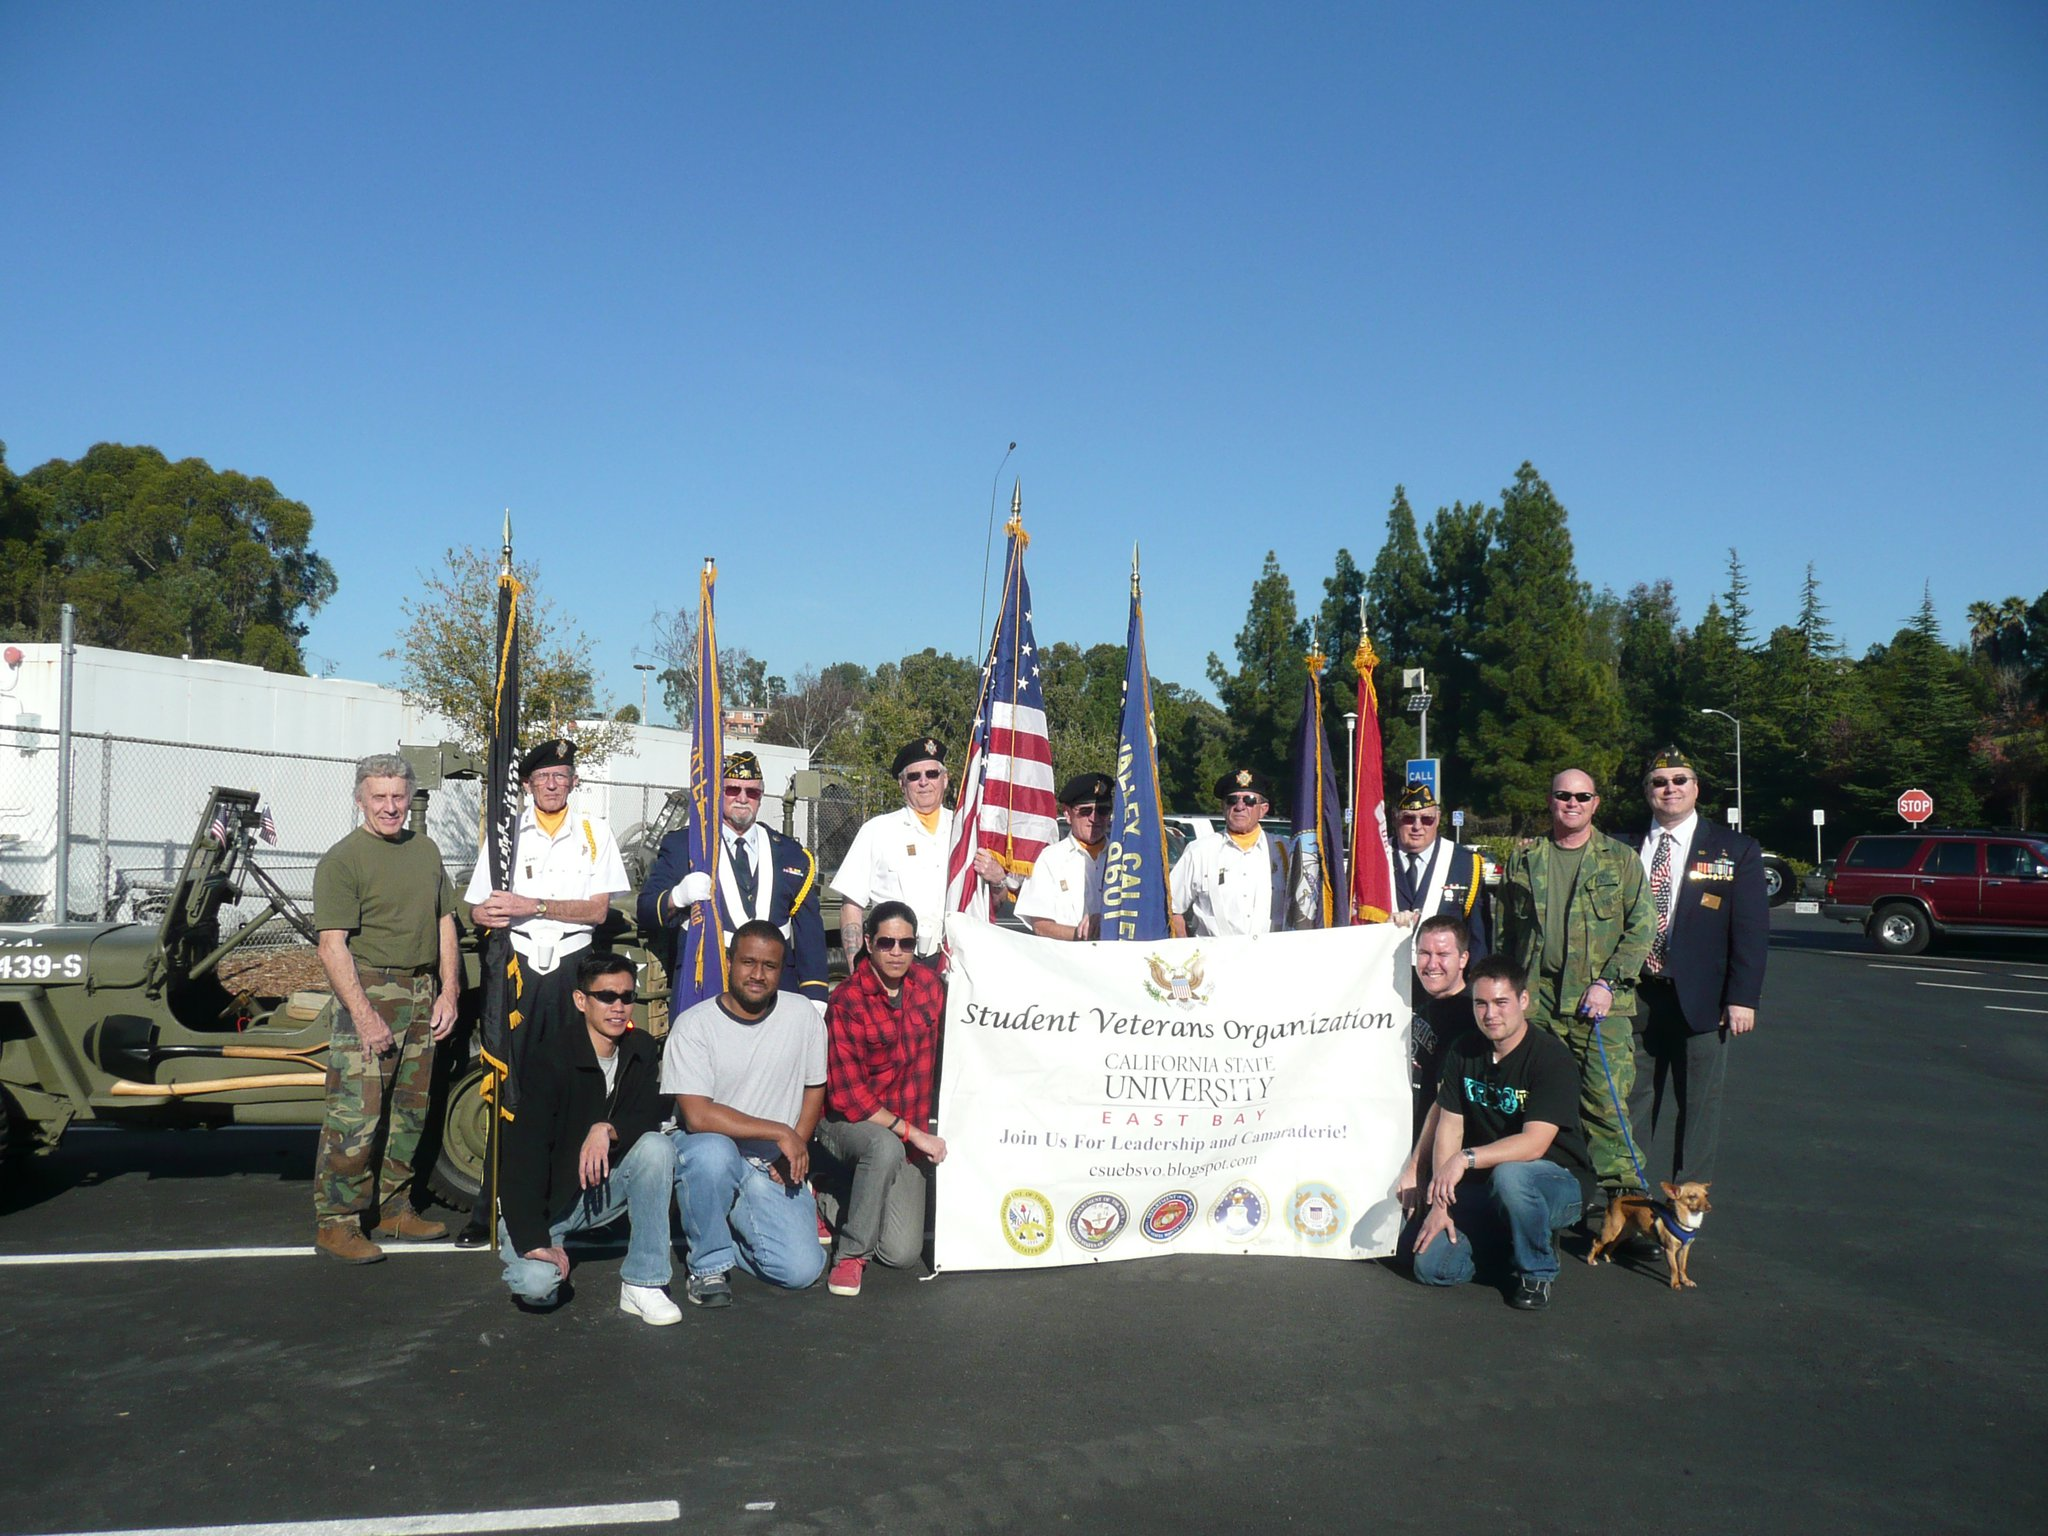 CSUEB student veterans participated in the 2011 Homecoming parade. (Photo: CSUEB SVO Facebook page)